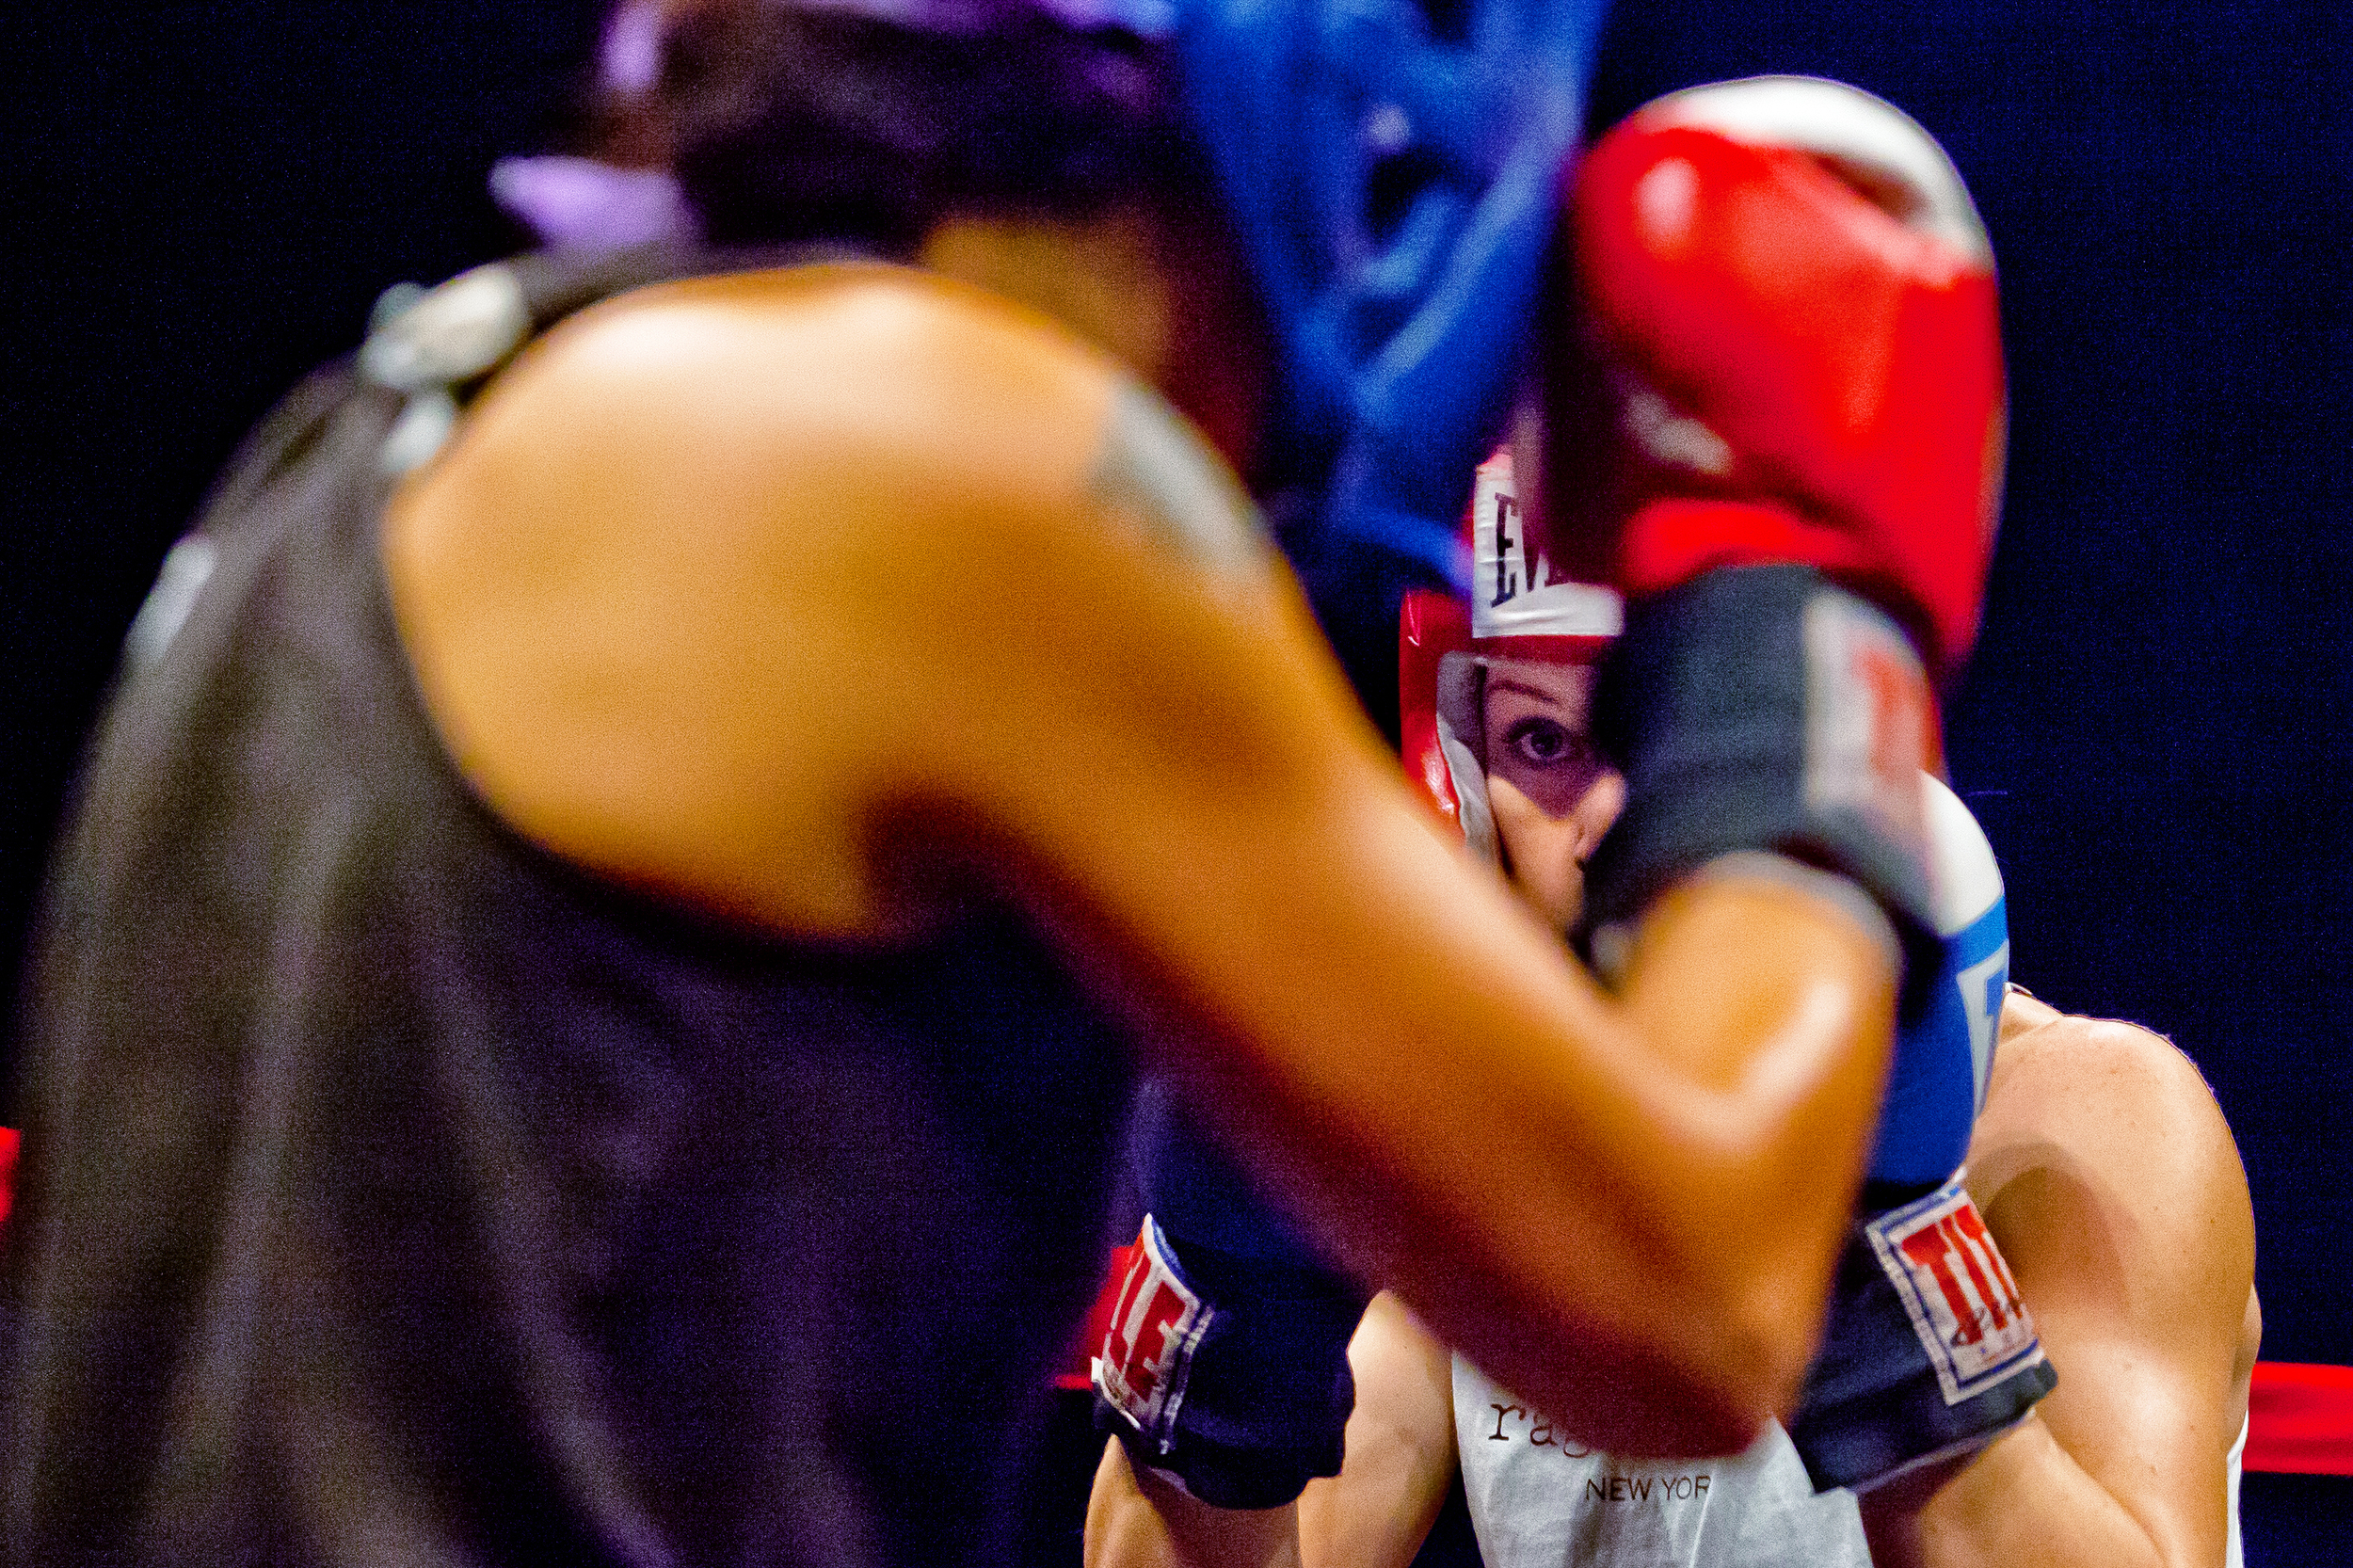 Fight 2: Raquel Cepeda v. Macy TankingHaymakers for Hope at the Hammerstein Ballroom in New York City, Nov. 14, 2013.